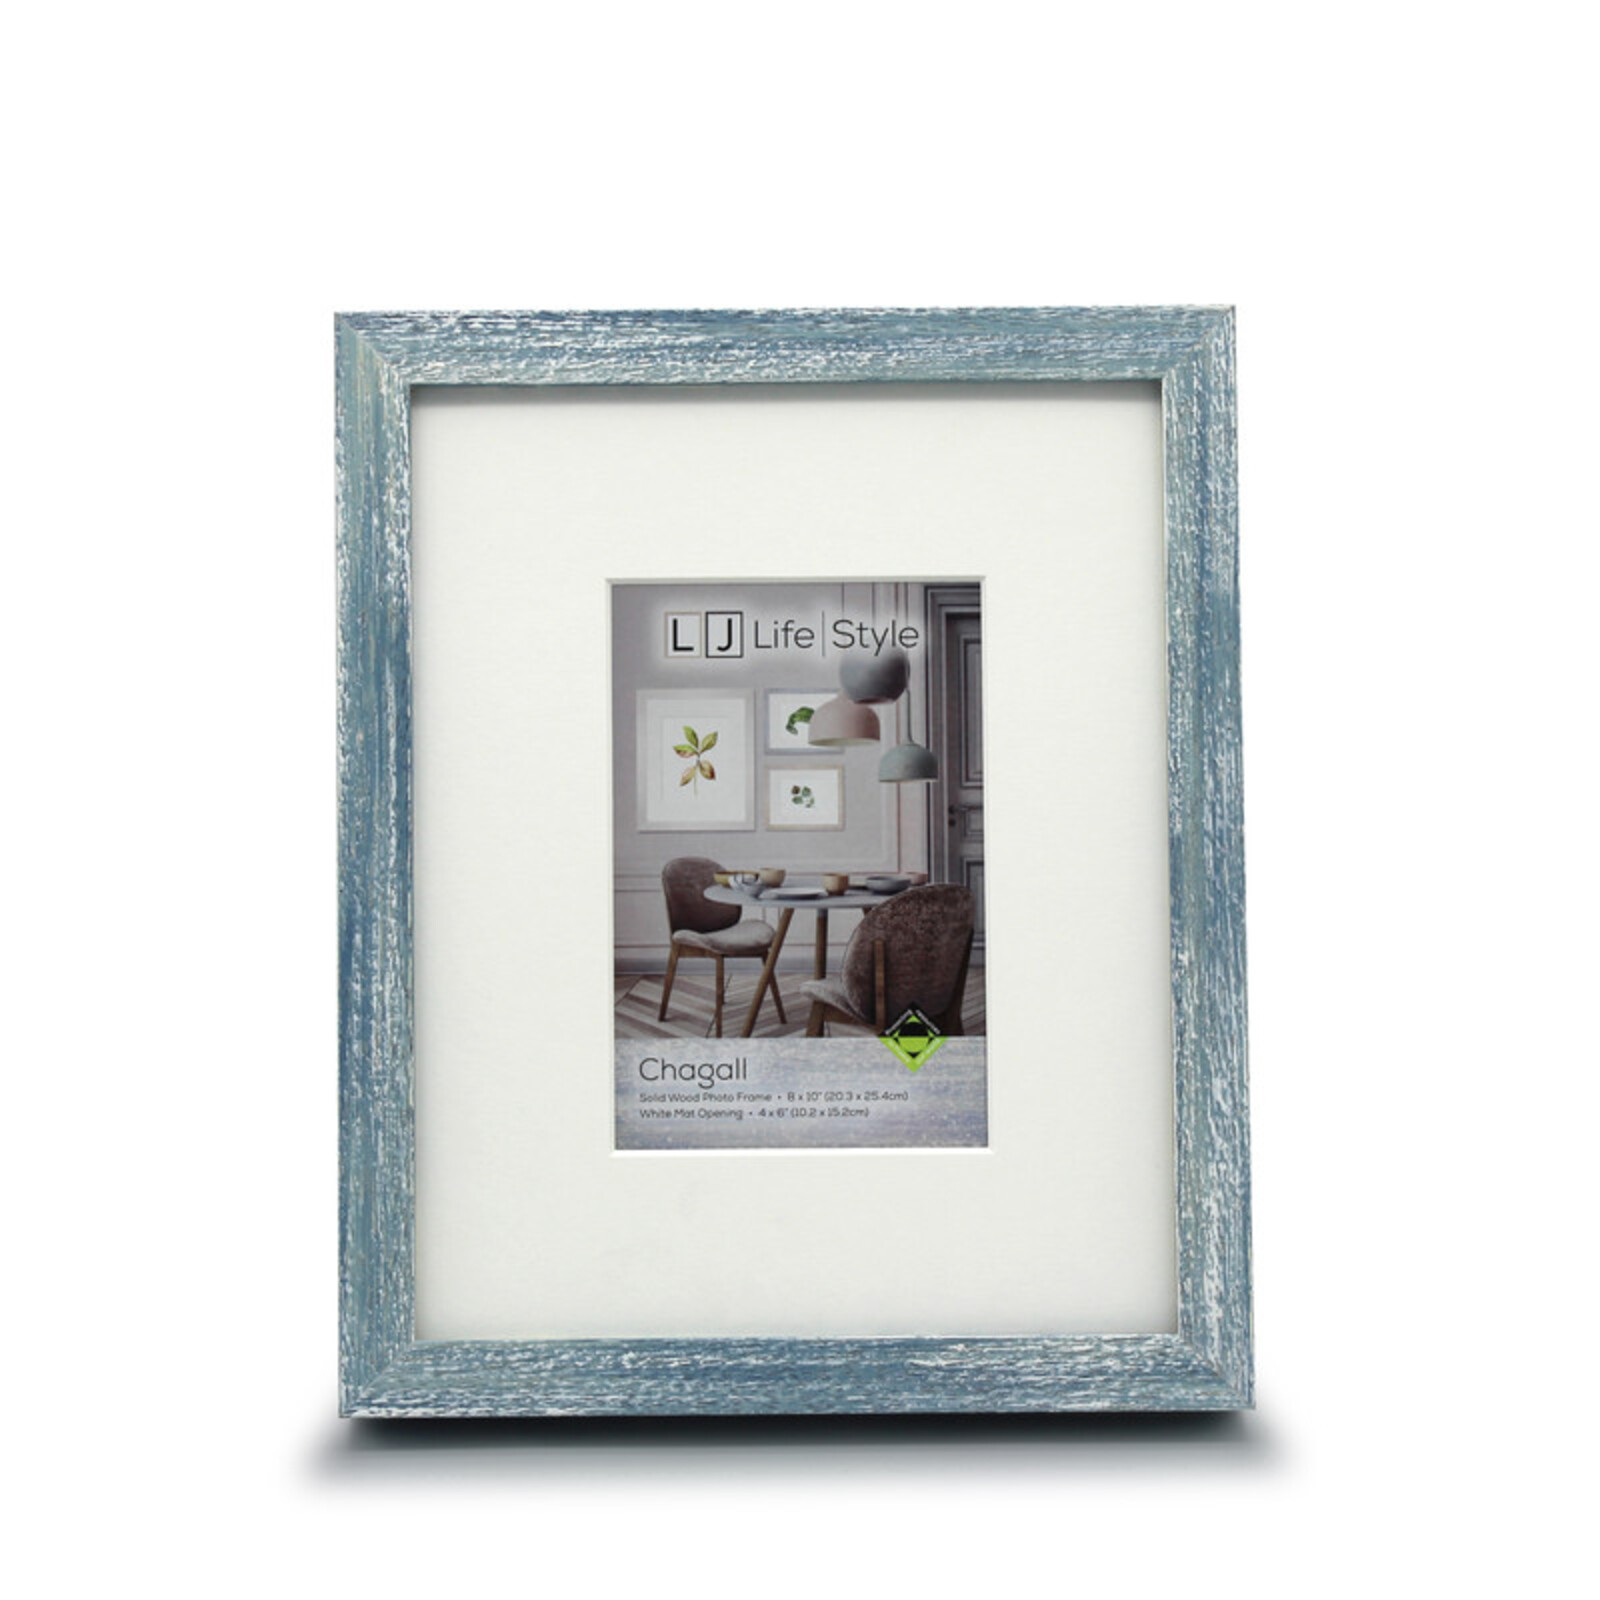 Chagall 8 x 10inch/4 x 6inch Opening Blue Photo Frame